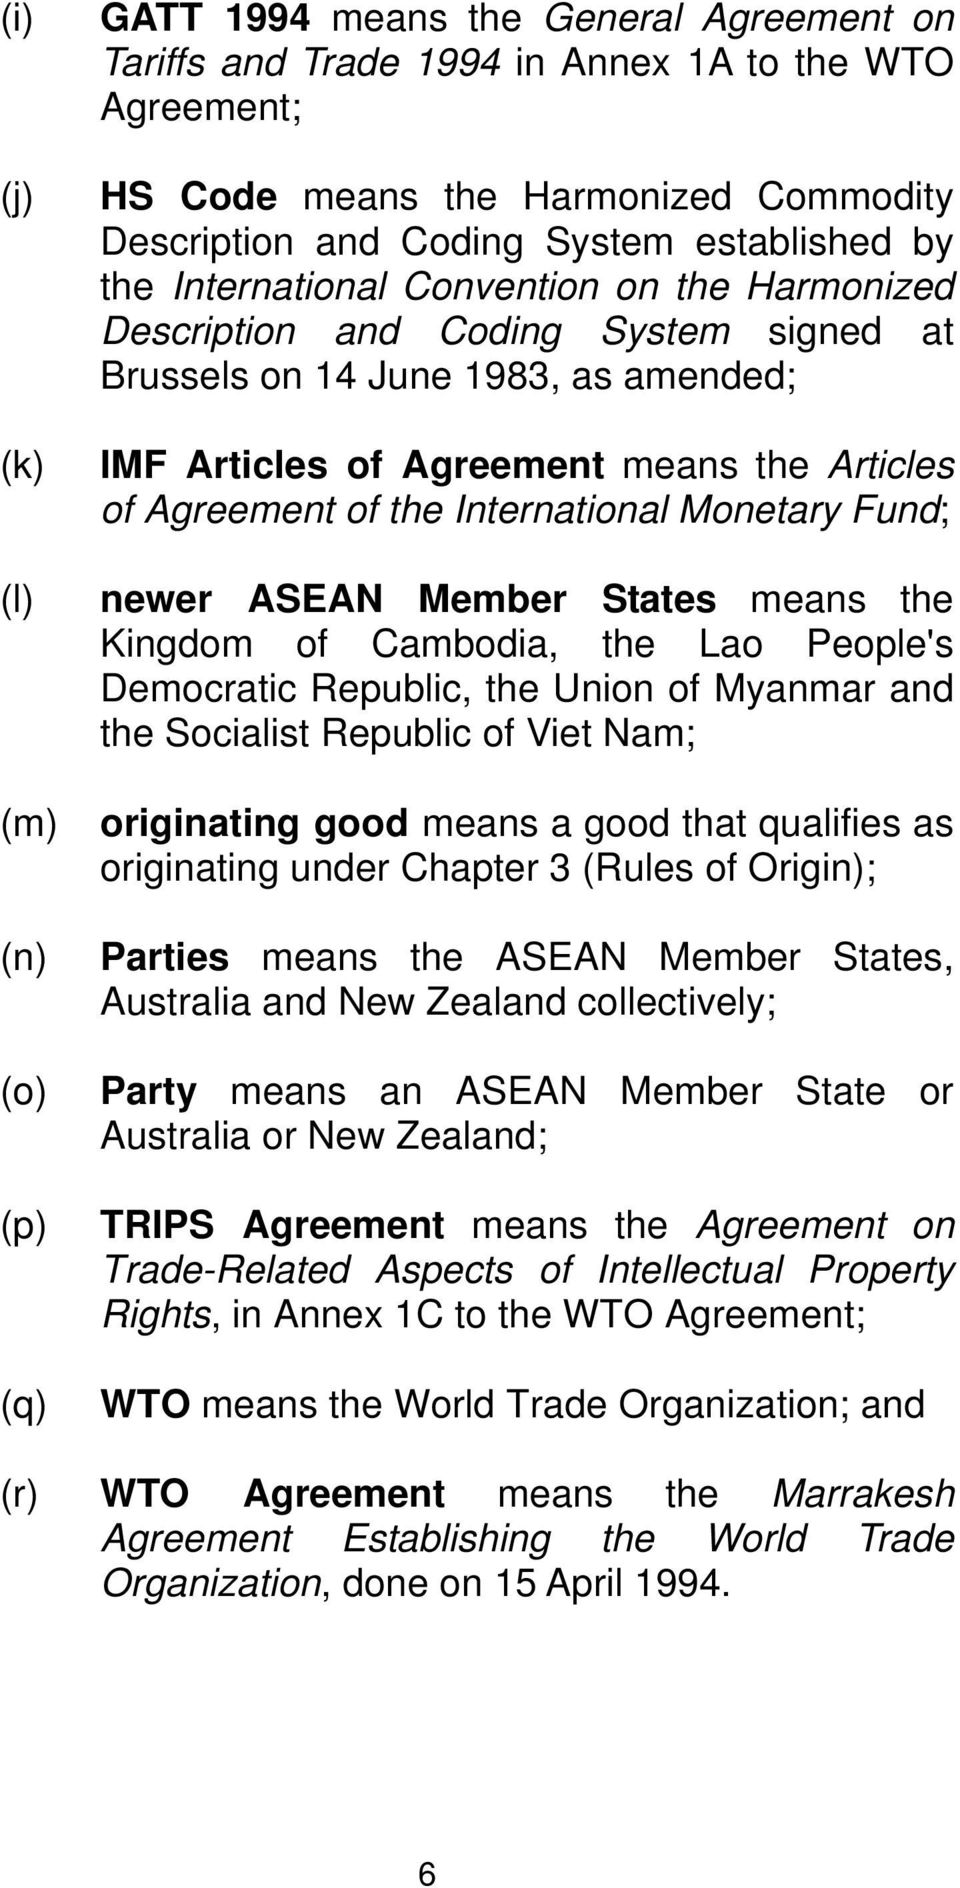 Agreement of the International Monetary Fund; newer ASEAN Member States means the Kingdom of Cambodia, the Lao People's Democratic Republic, the Union of Myanmar and the Socialist Republic of Viet